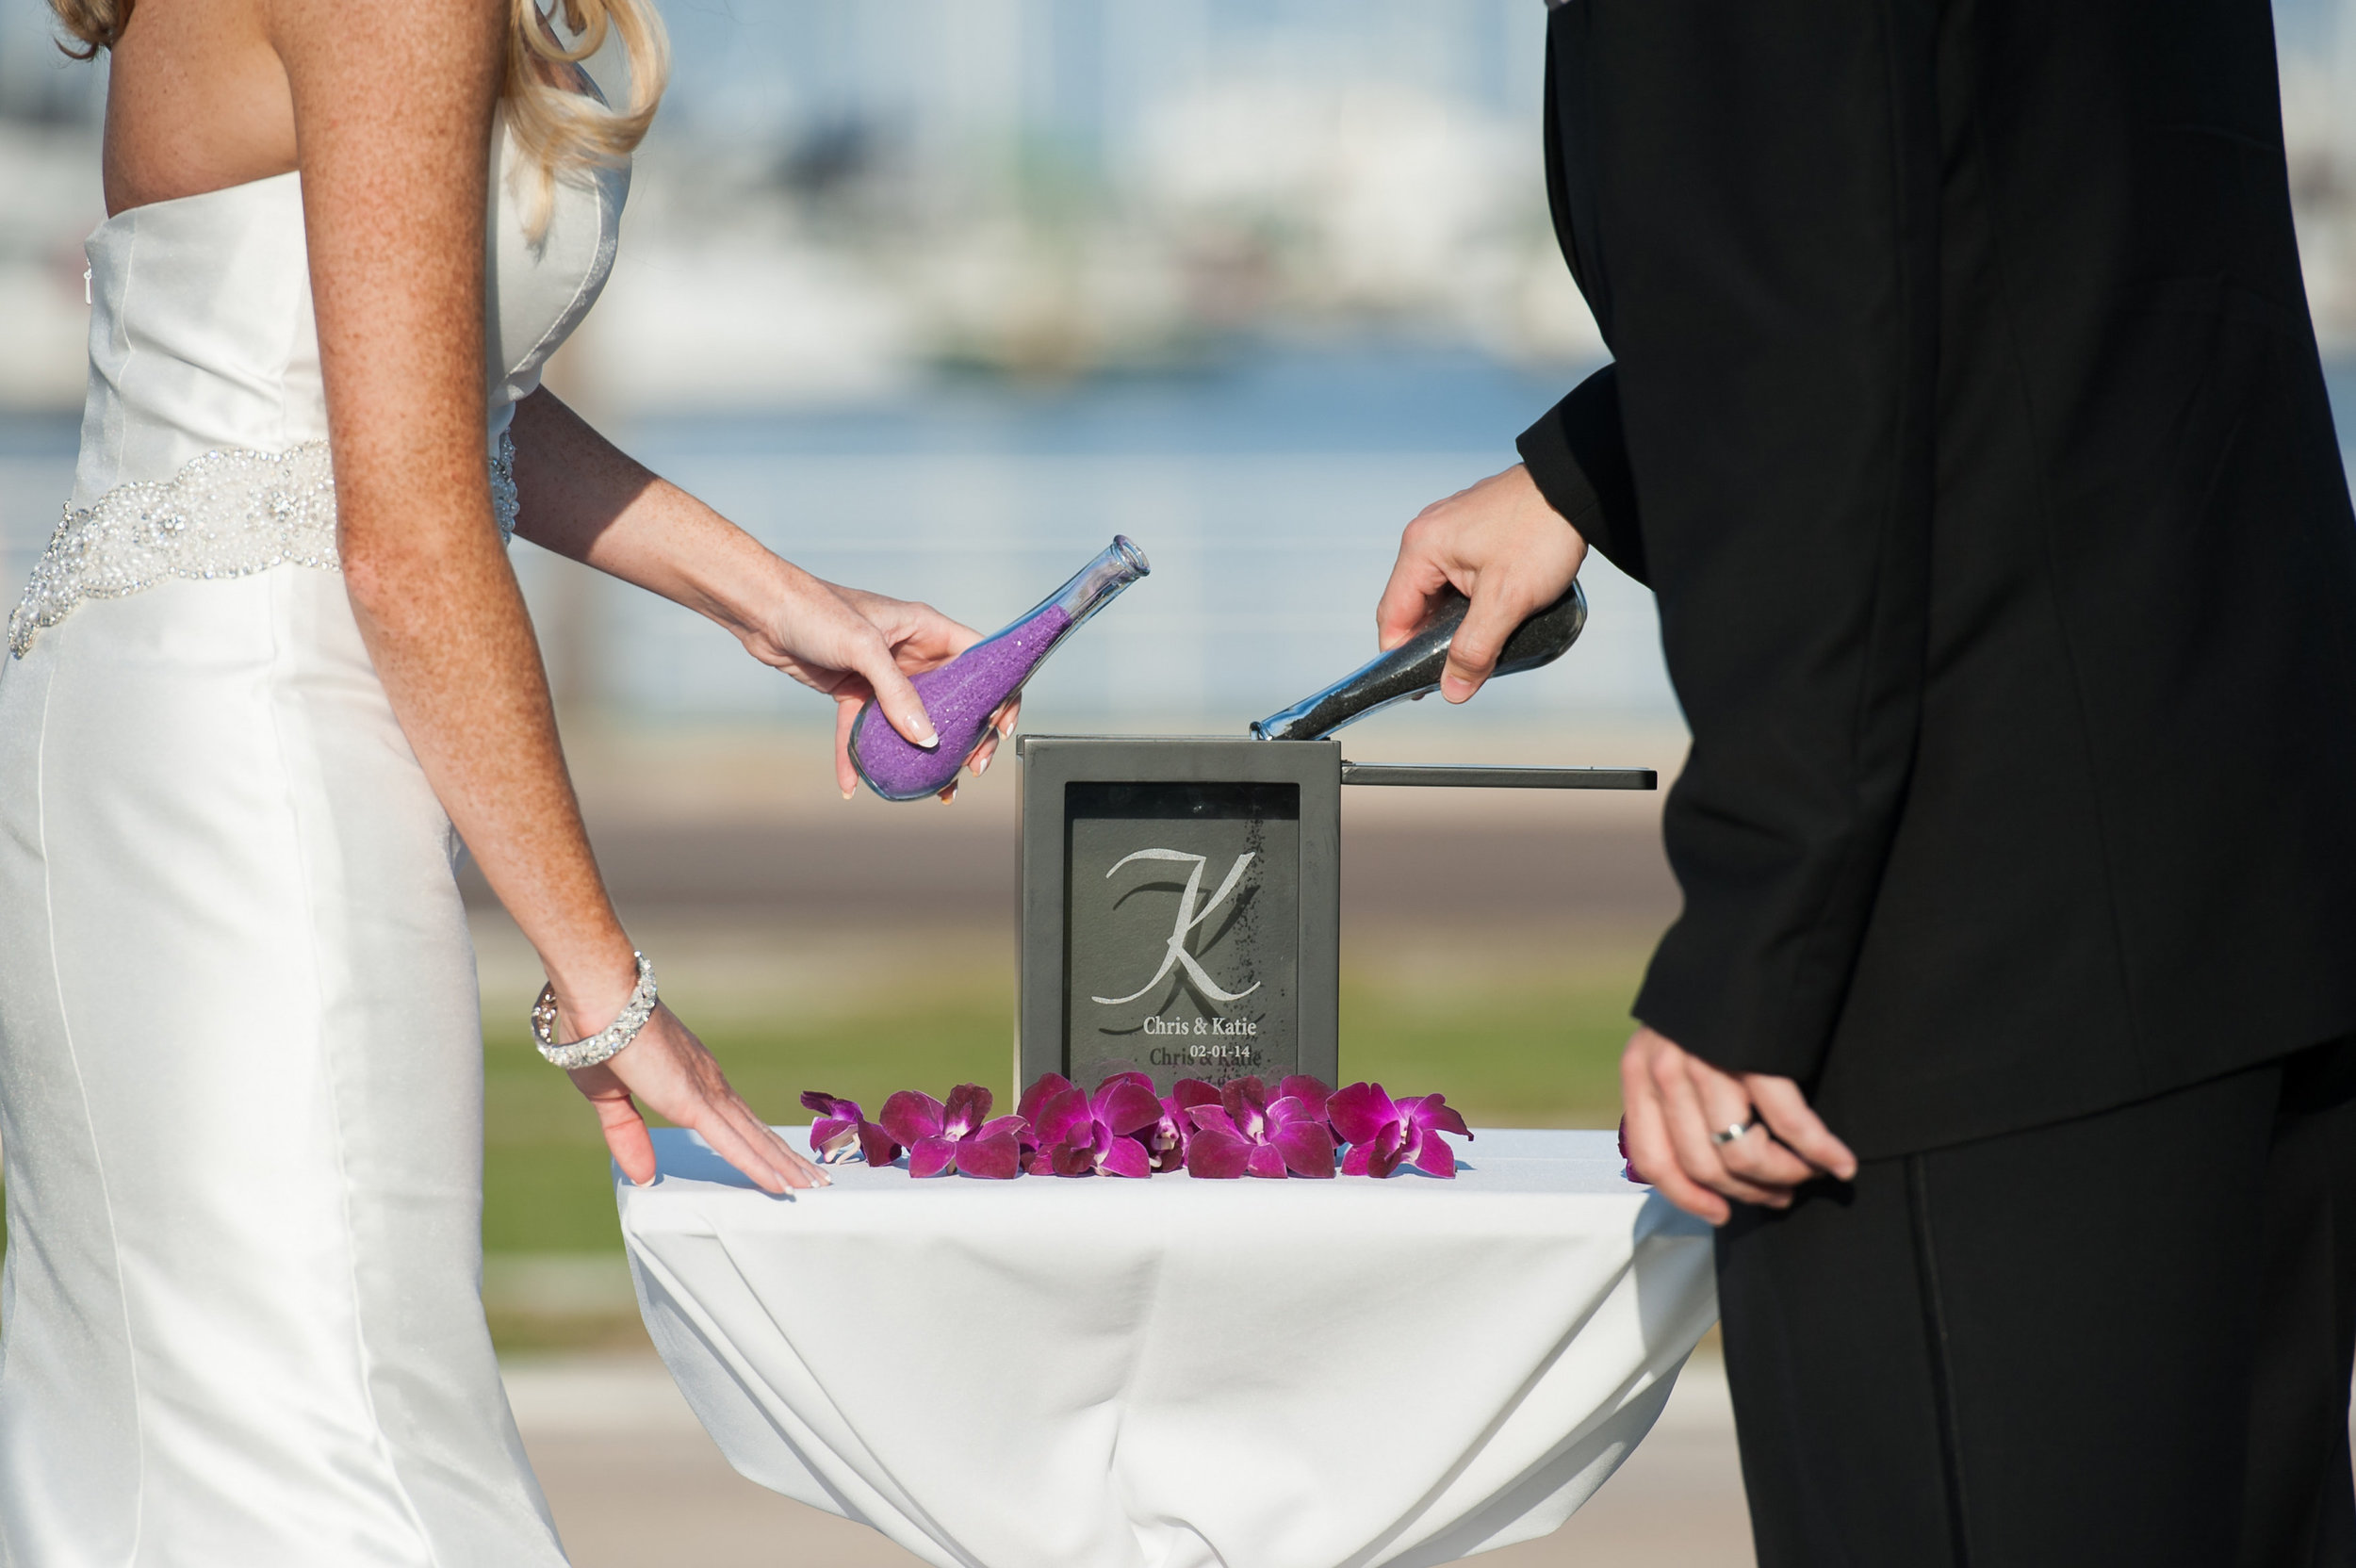 A unique sand ceremony frame customized with the couple's names made for a chic keepsake